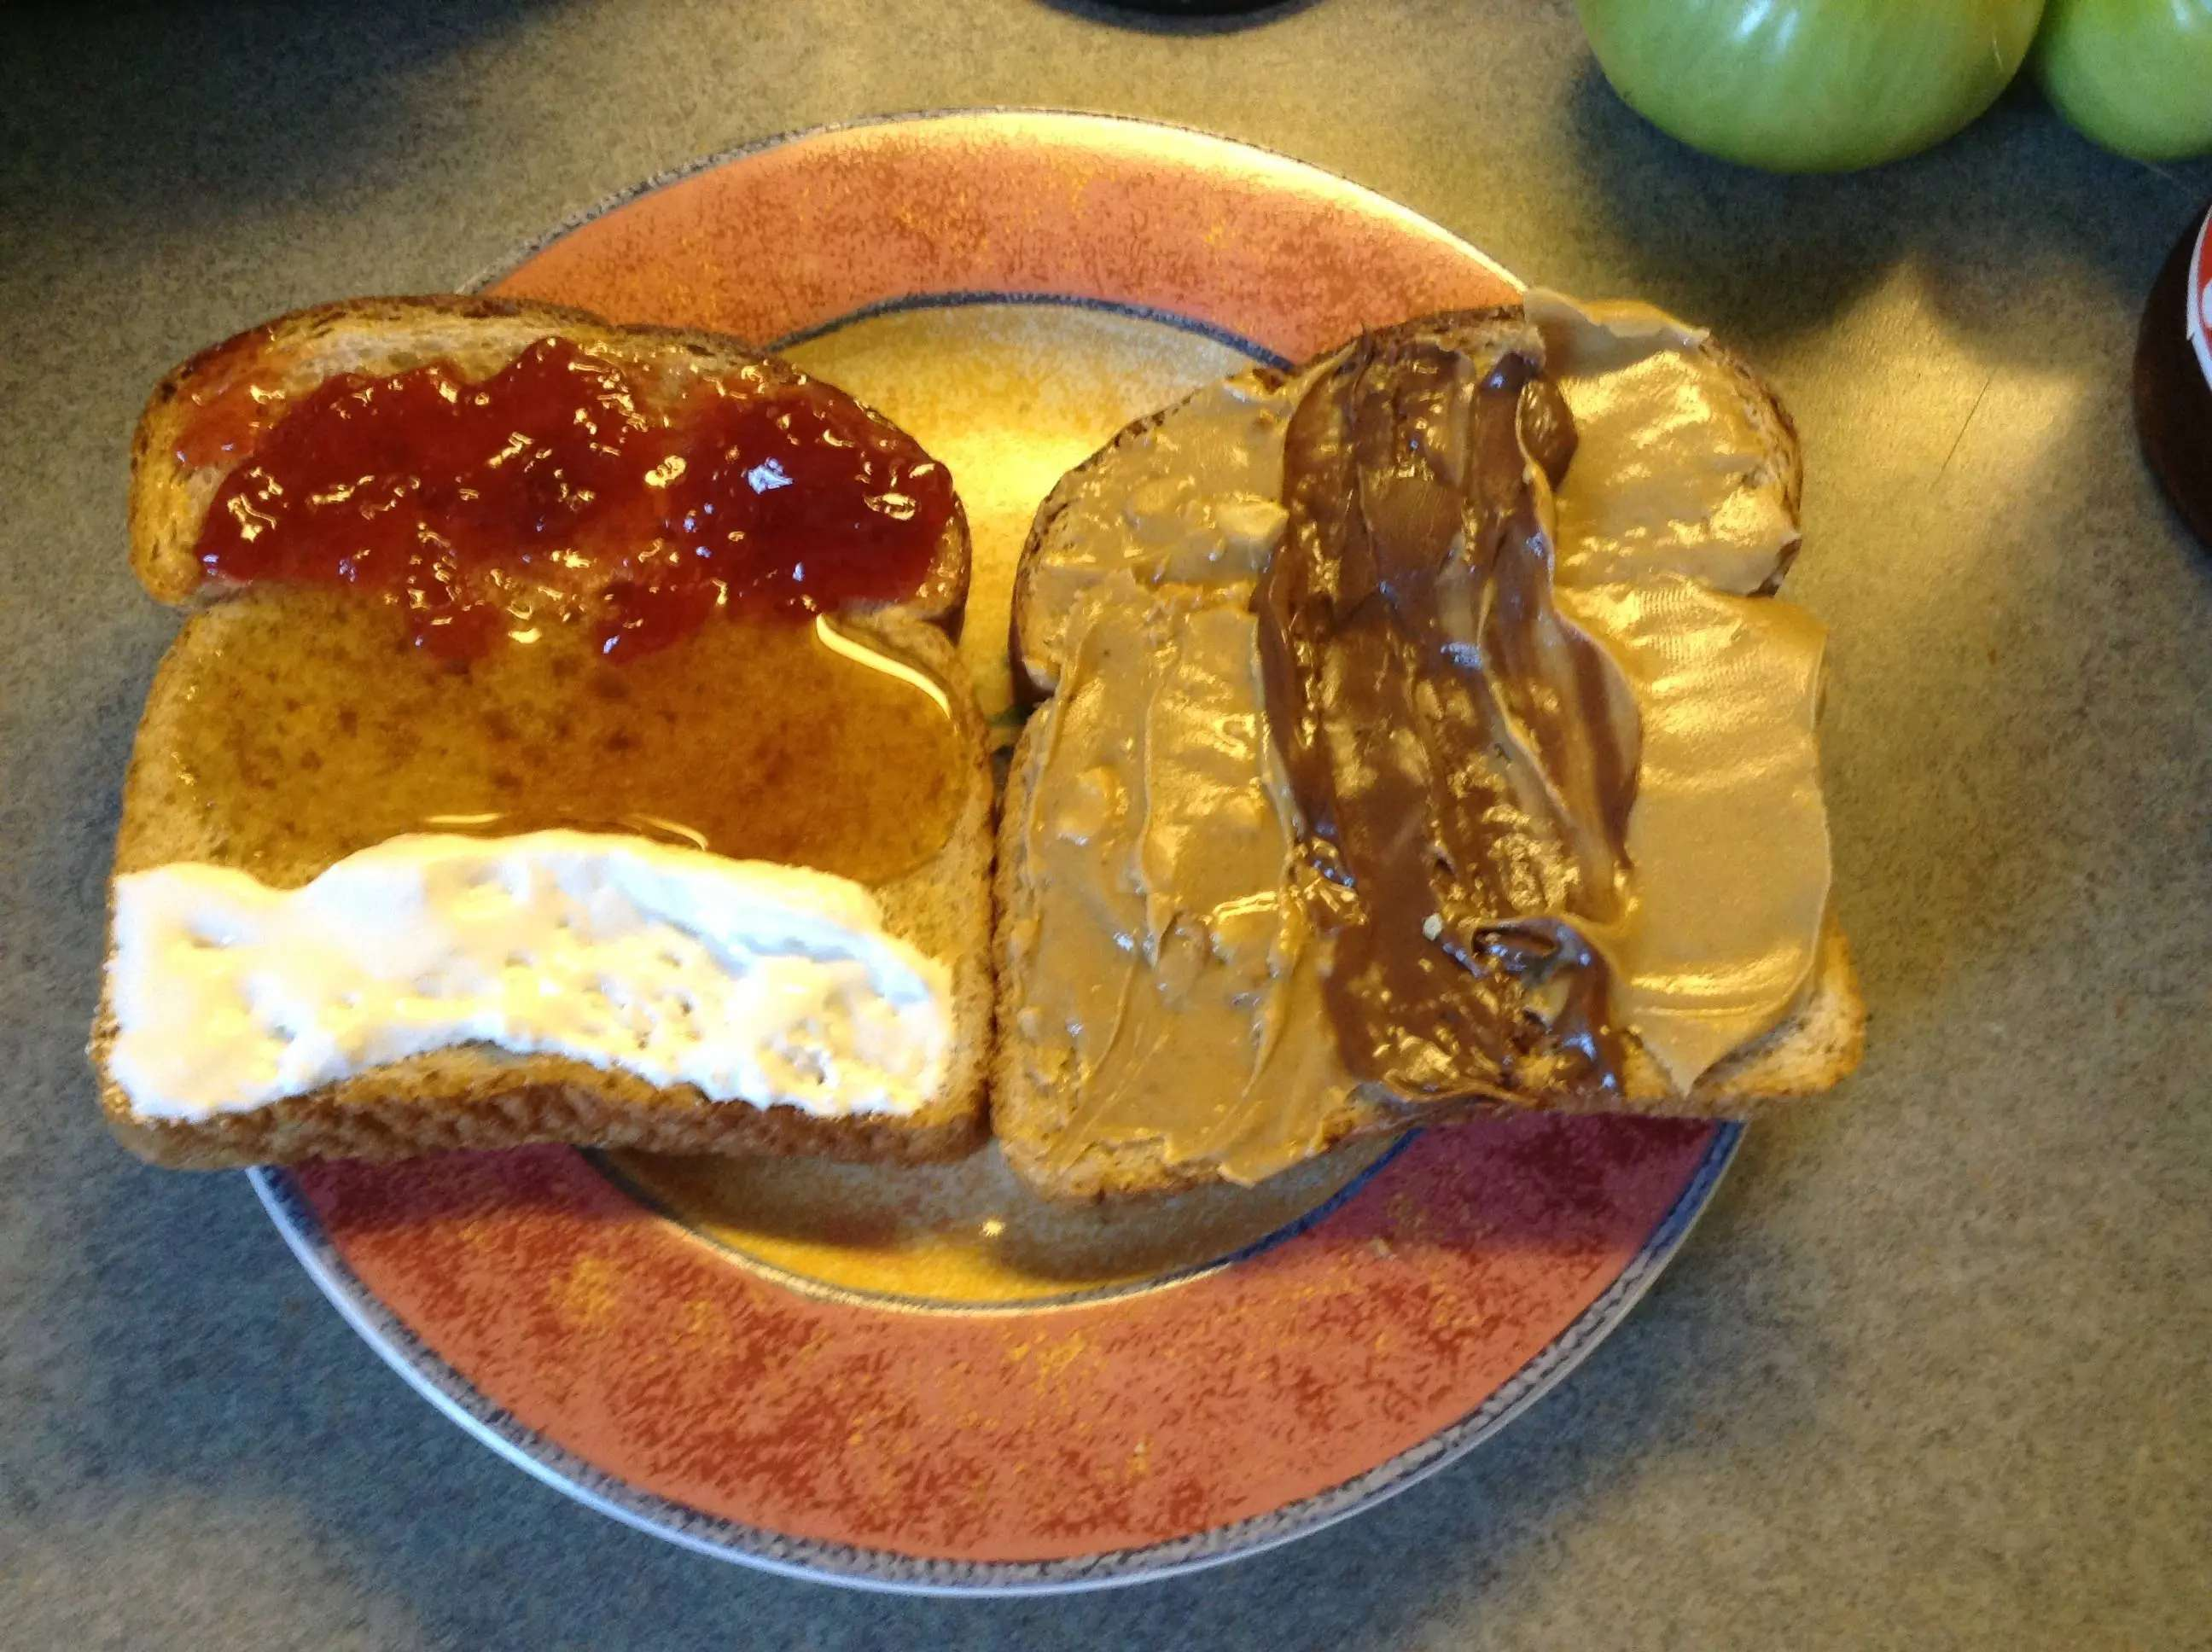 Get bored easily? Try making the PB&J 2.0 sandwich with strawberry jam, honey, marshmallow fluff, two kinds of peanut butter, and Nutella. It's a different flavor with every bite!